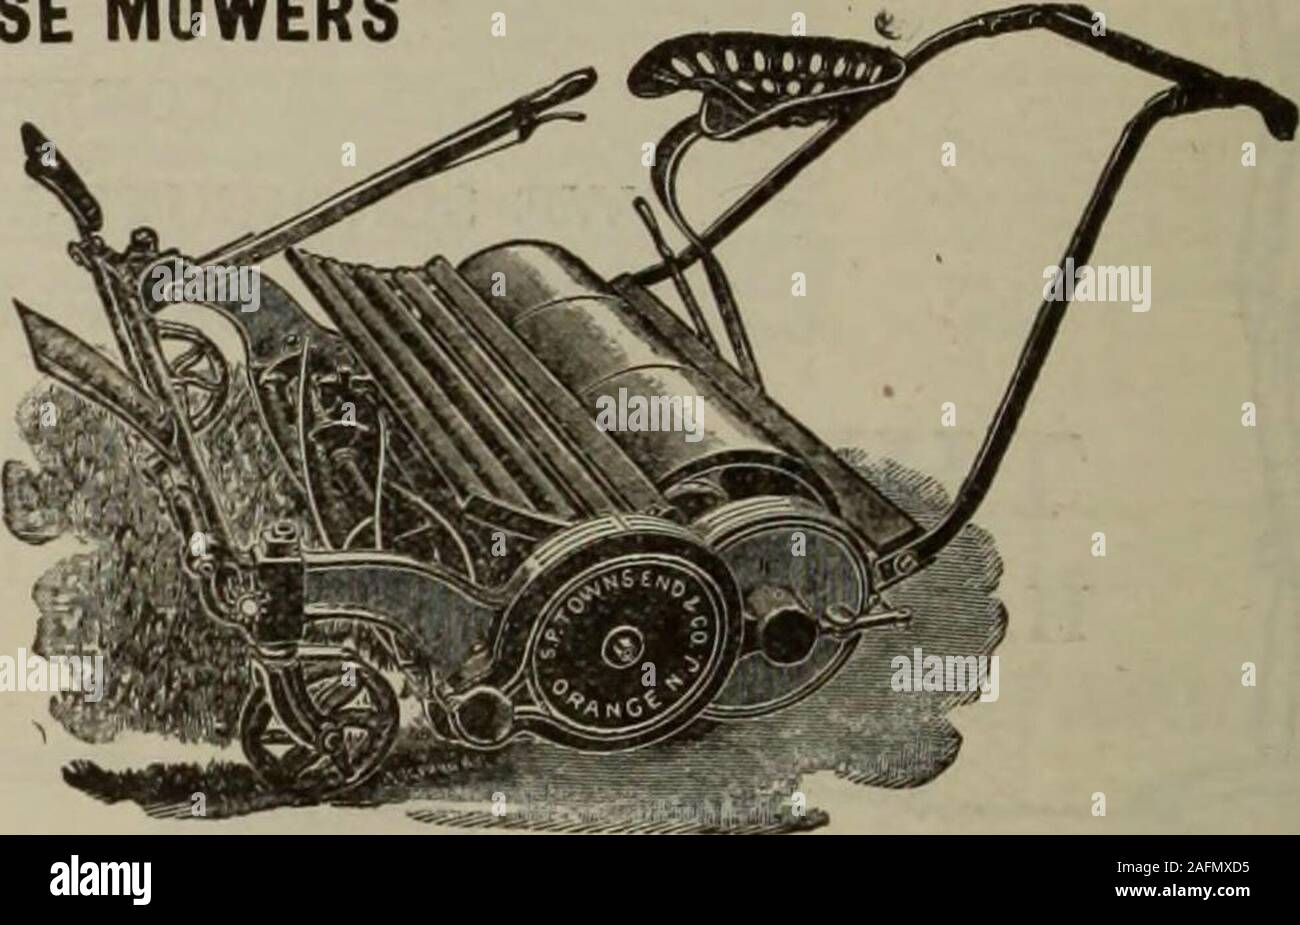 . Hardware merchandising August-October 1912. TOWNSEND MOWERS HAND MOWERS and HORSE MOWERS All Our Hand MowersAre Ball Bearing SENT ON THEIR MERITS Write for Catalog S. P. Townsend ®L Co. ORANGE, N. J.. Be Careful!! The hardwareman is making a great mistake if he overlooks the HAMILTON RIFLE Stock Photo